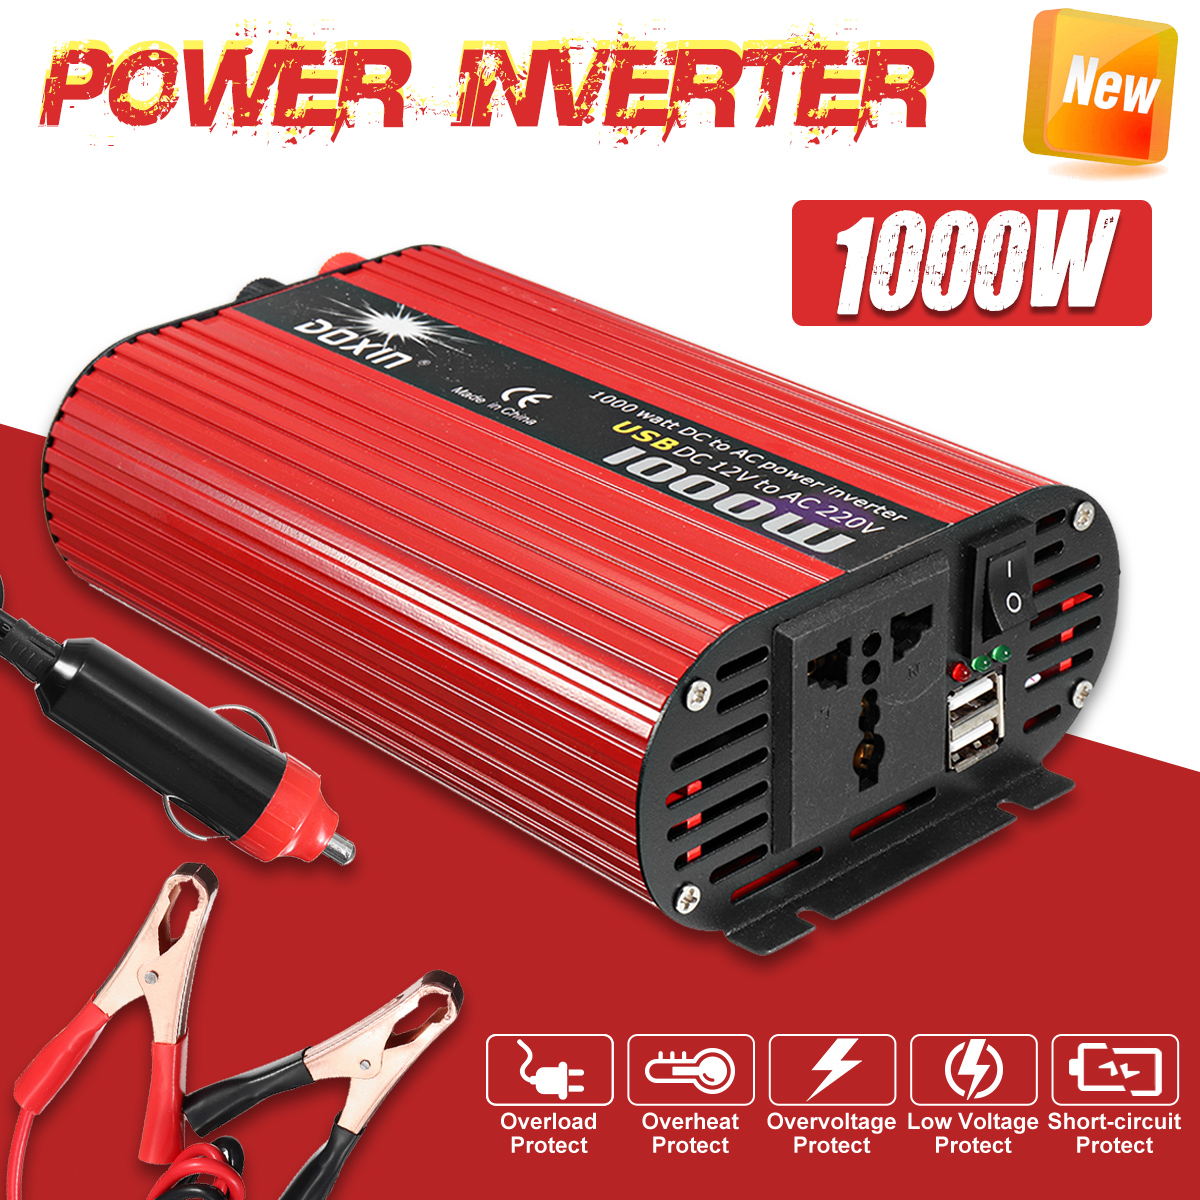 Car Inverter 12V 220V 1000W P eak Voltage Transformer Converter DC 12V To AC 220V Solar Inverter + Car Cigarette Lighter Charger car inverter 12v 220v power inverters voltage transformer converter 12 220 1000w charger on display solar adapter 12v 220v dy104